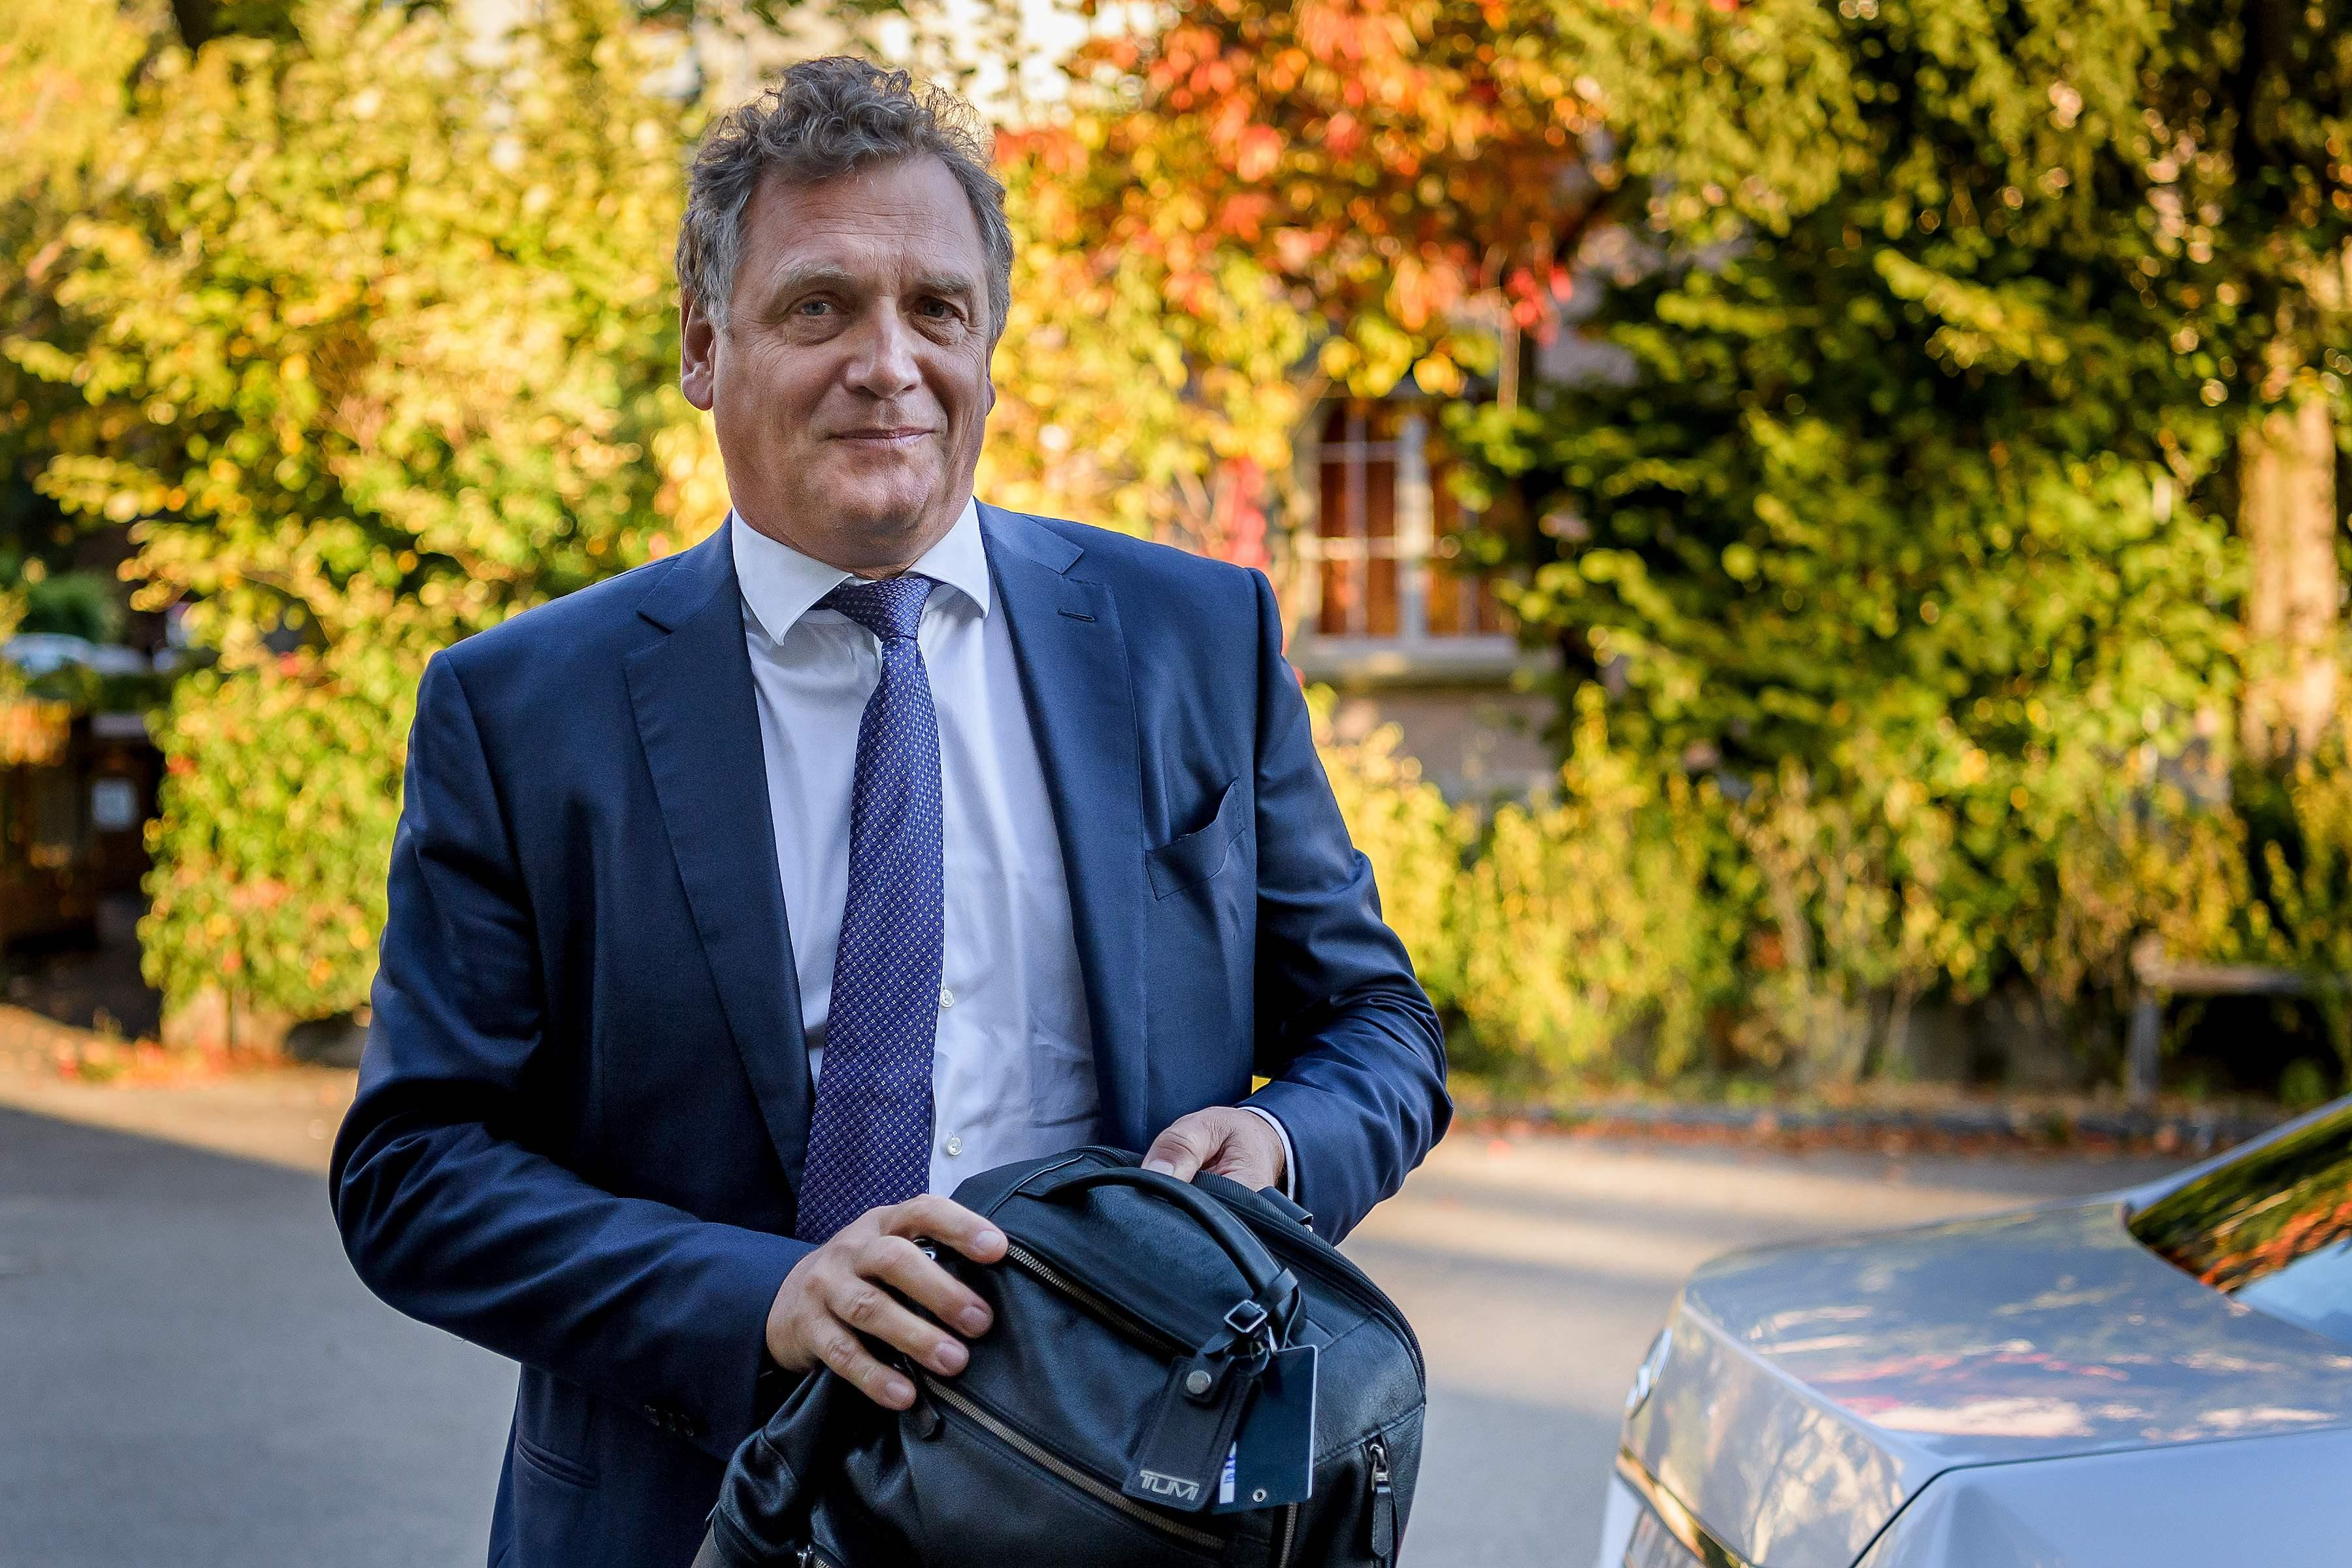 Jerome Valcke's £79,300 fine was also upheld by the sports ruling body